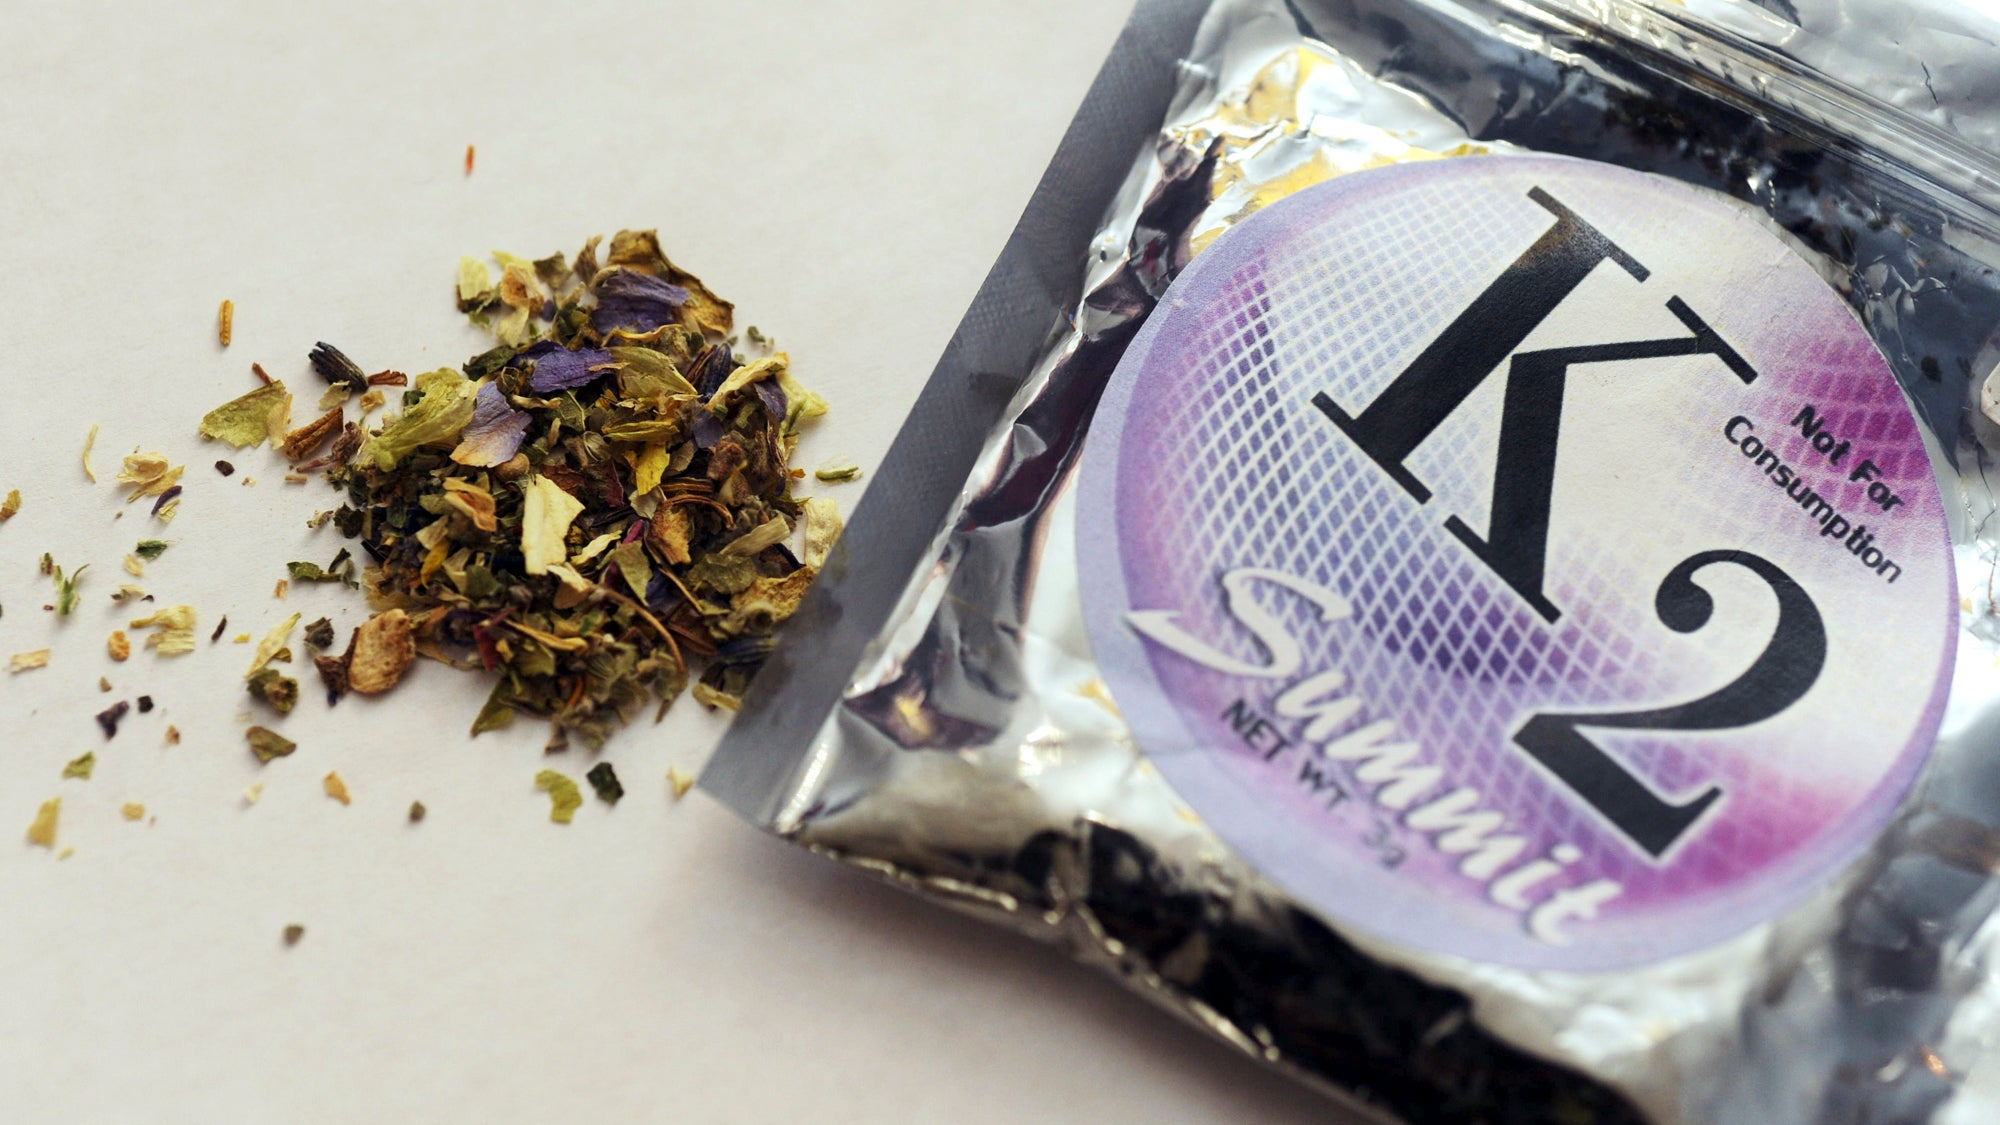 People Are Bleeding From Their Eyes And Ears After Smoking Synthetic Pot In The US